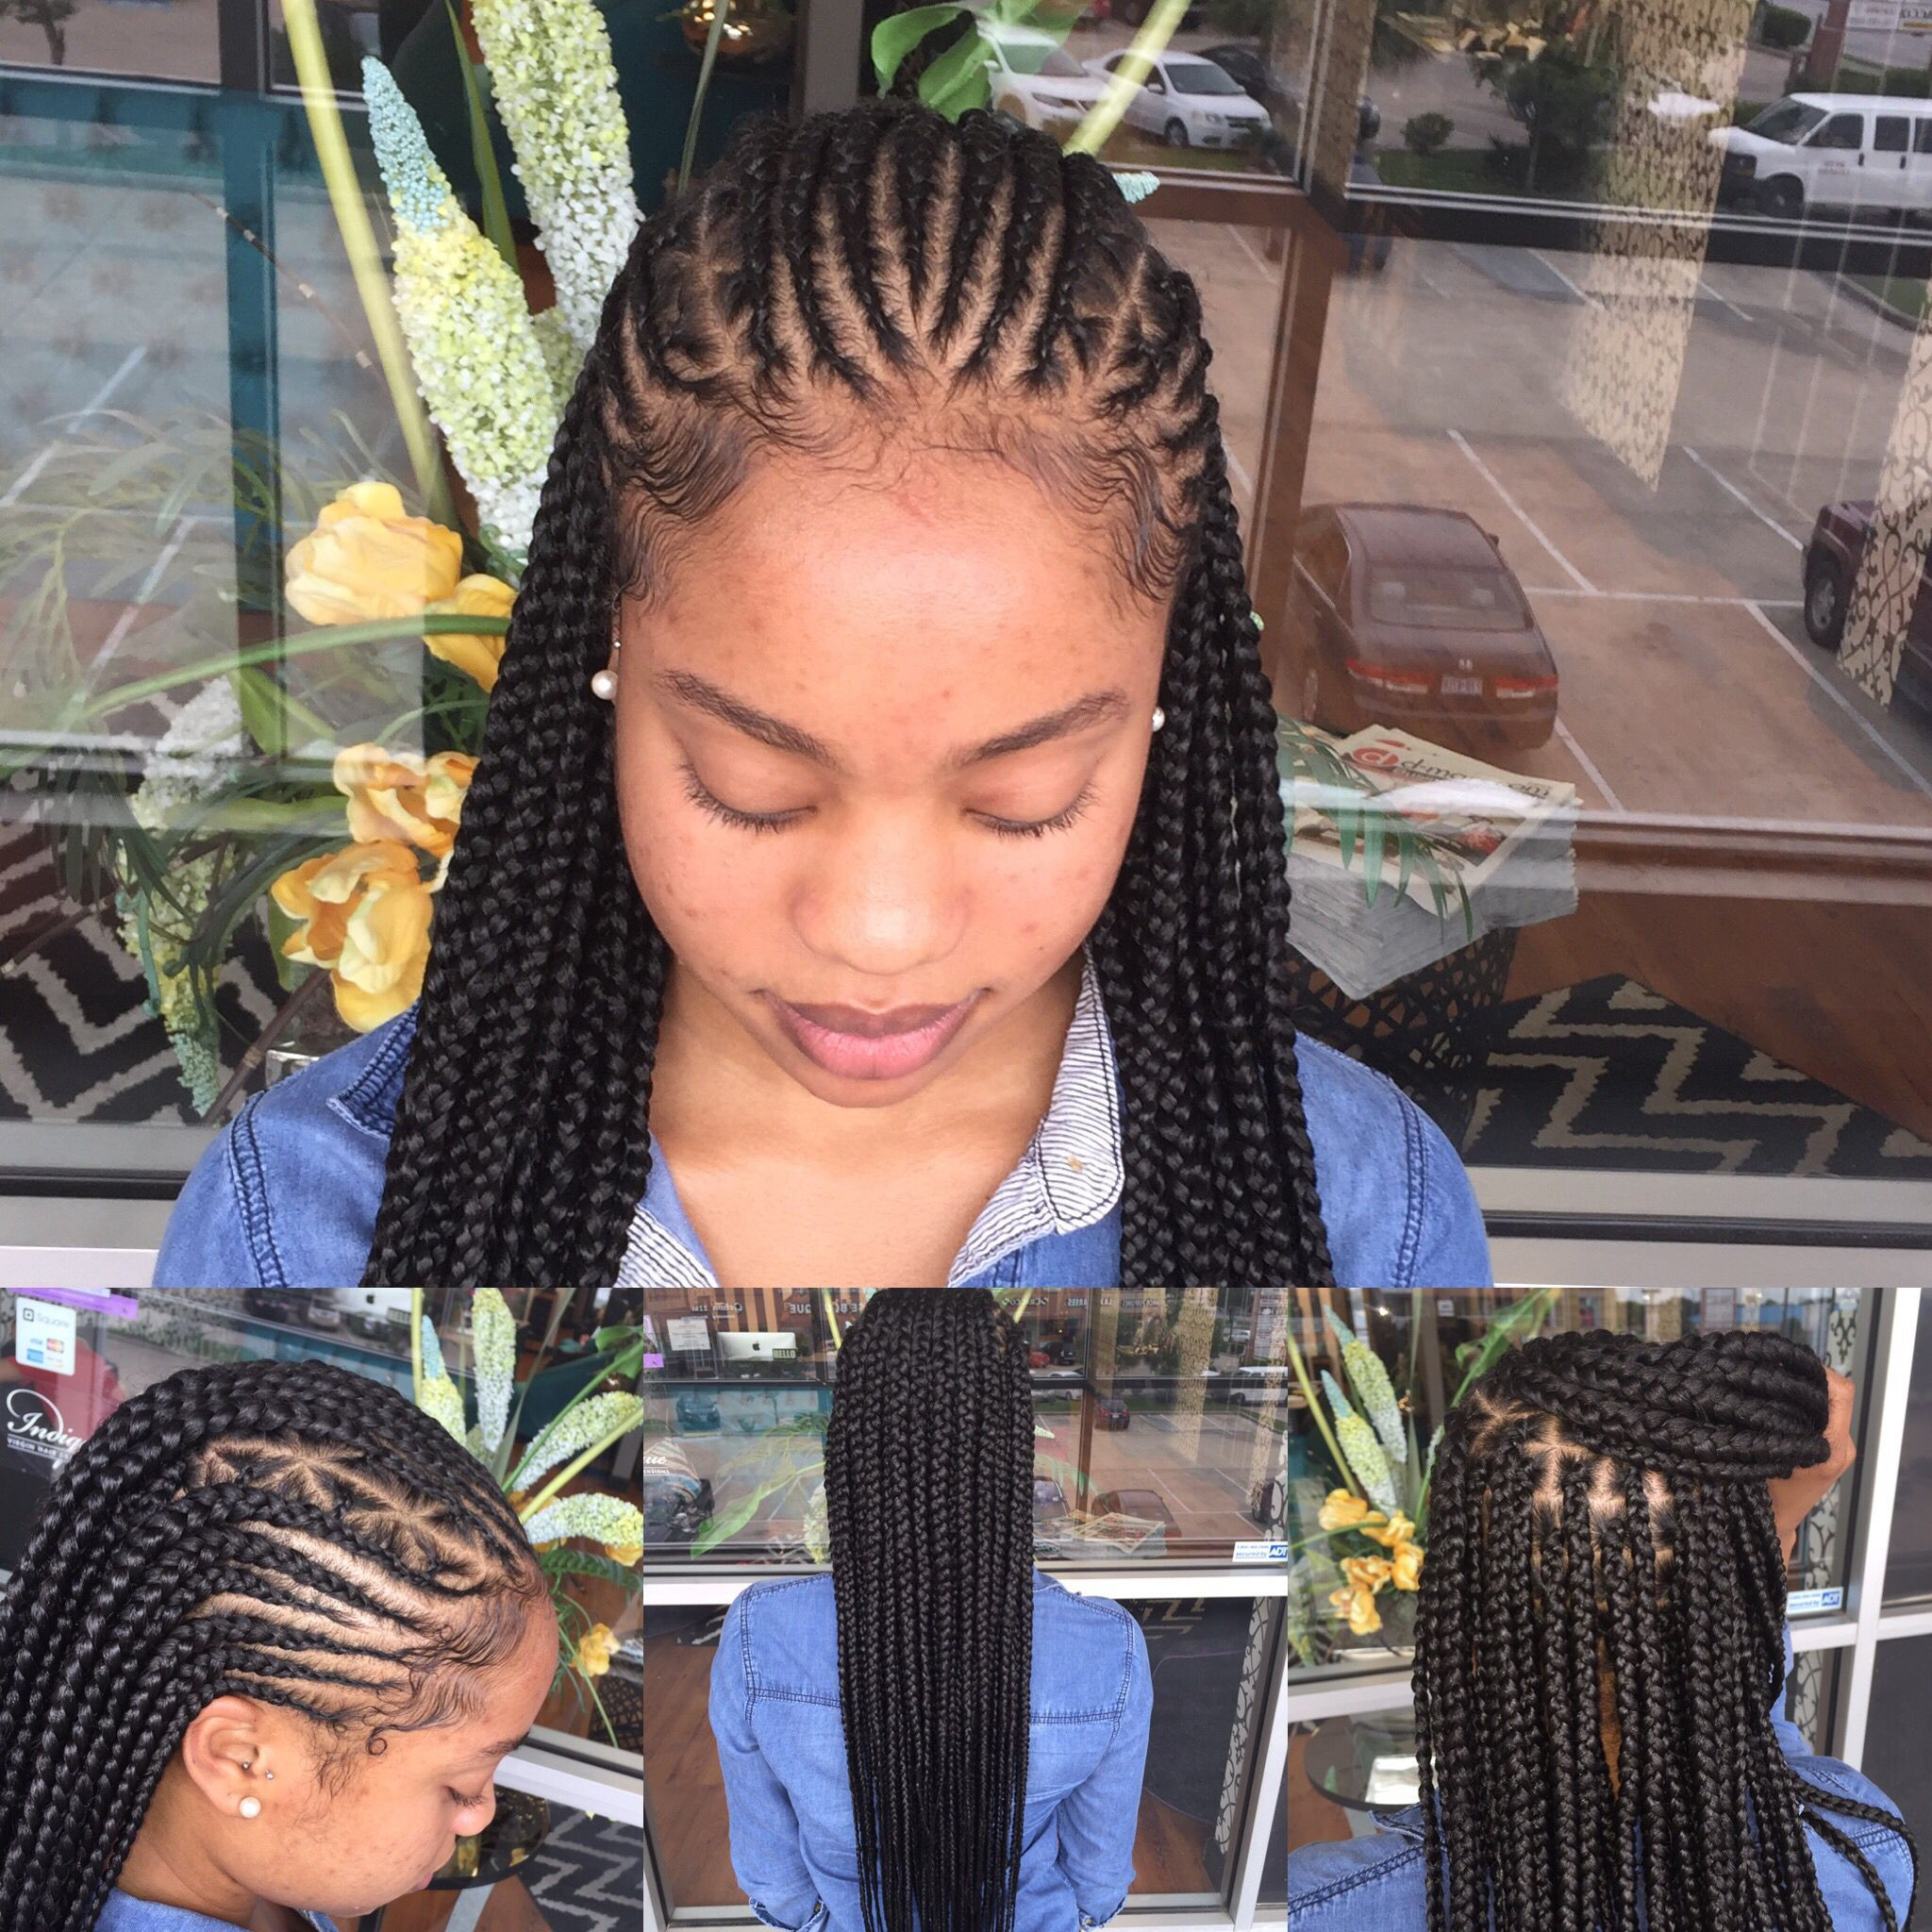 Best ideas about Summer Braids Hairstyles . Save or Pin Summer braids Beauty by Andi B Pinterest Now.